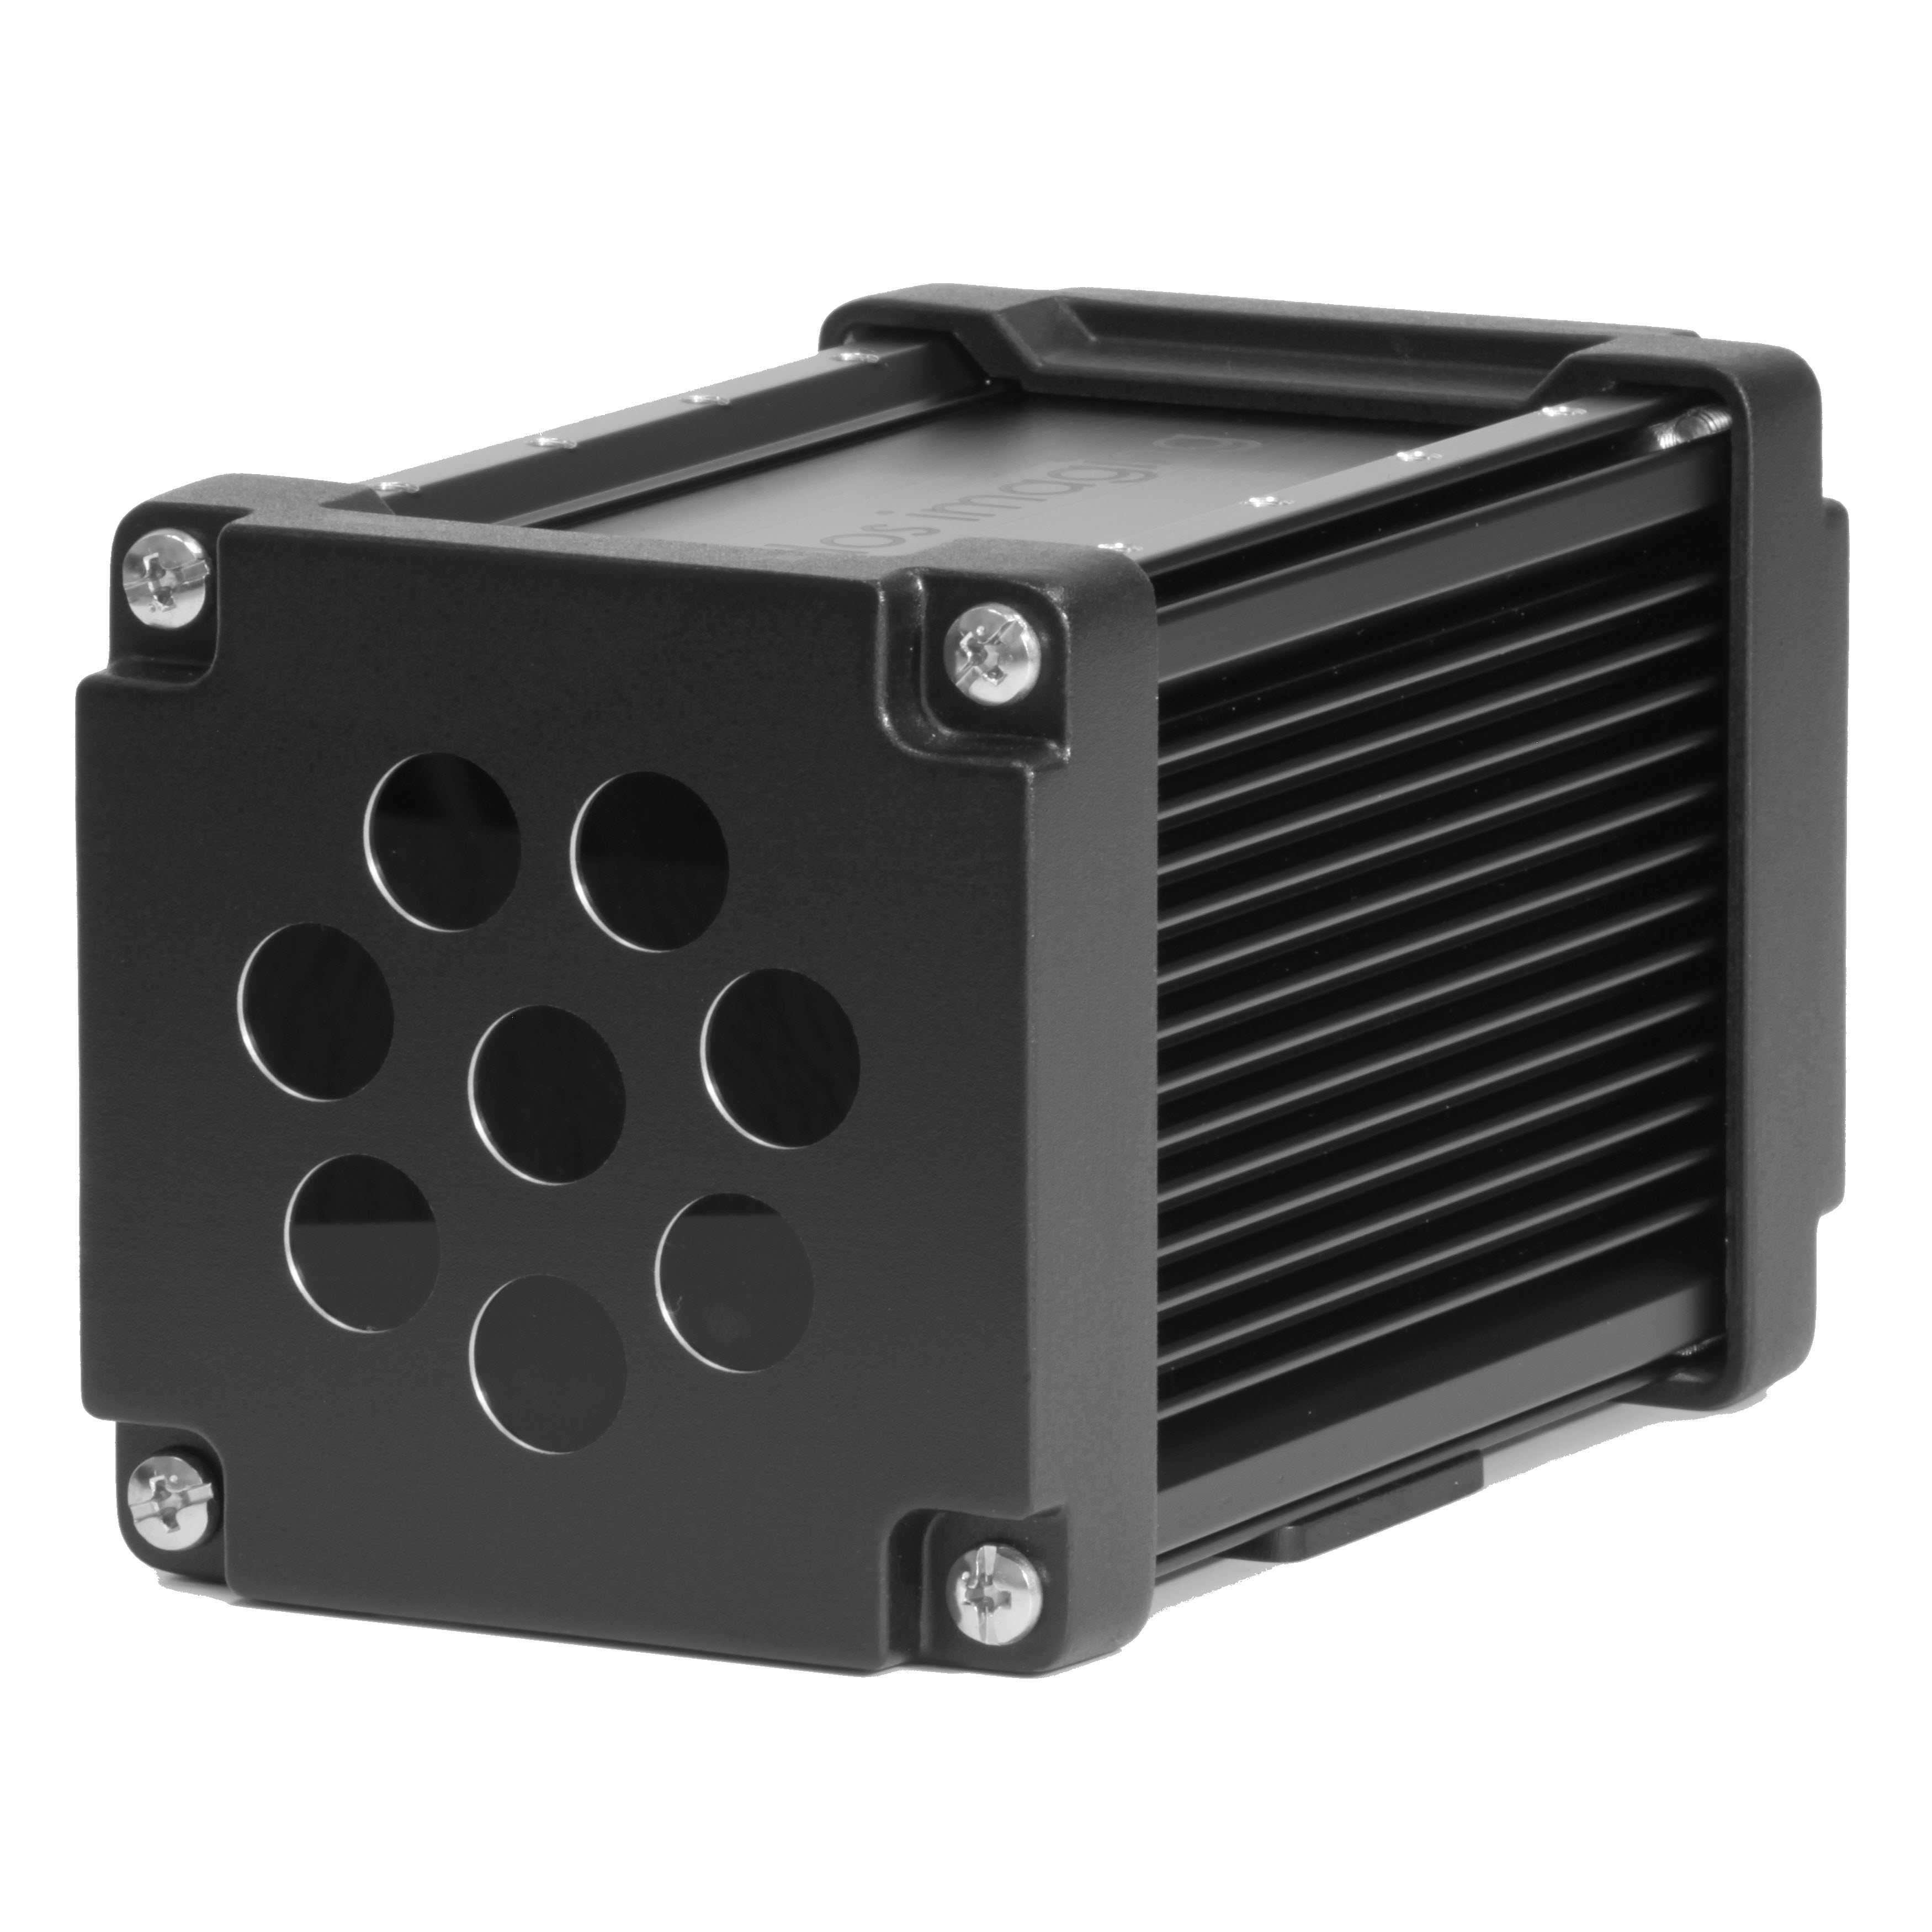 Swift-E Reconfigurable 3D Sensor is available for purchase